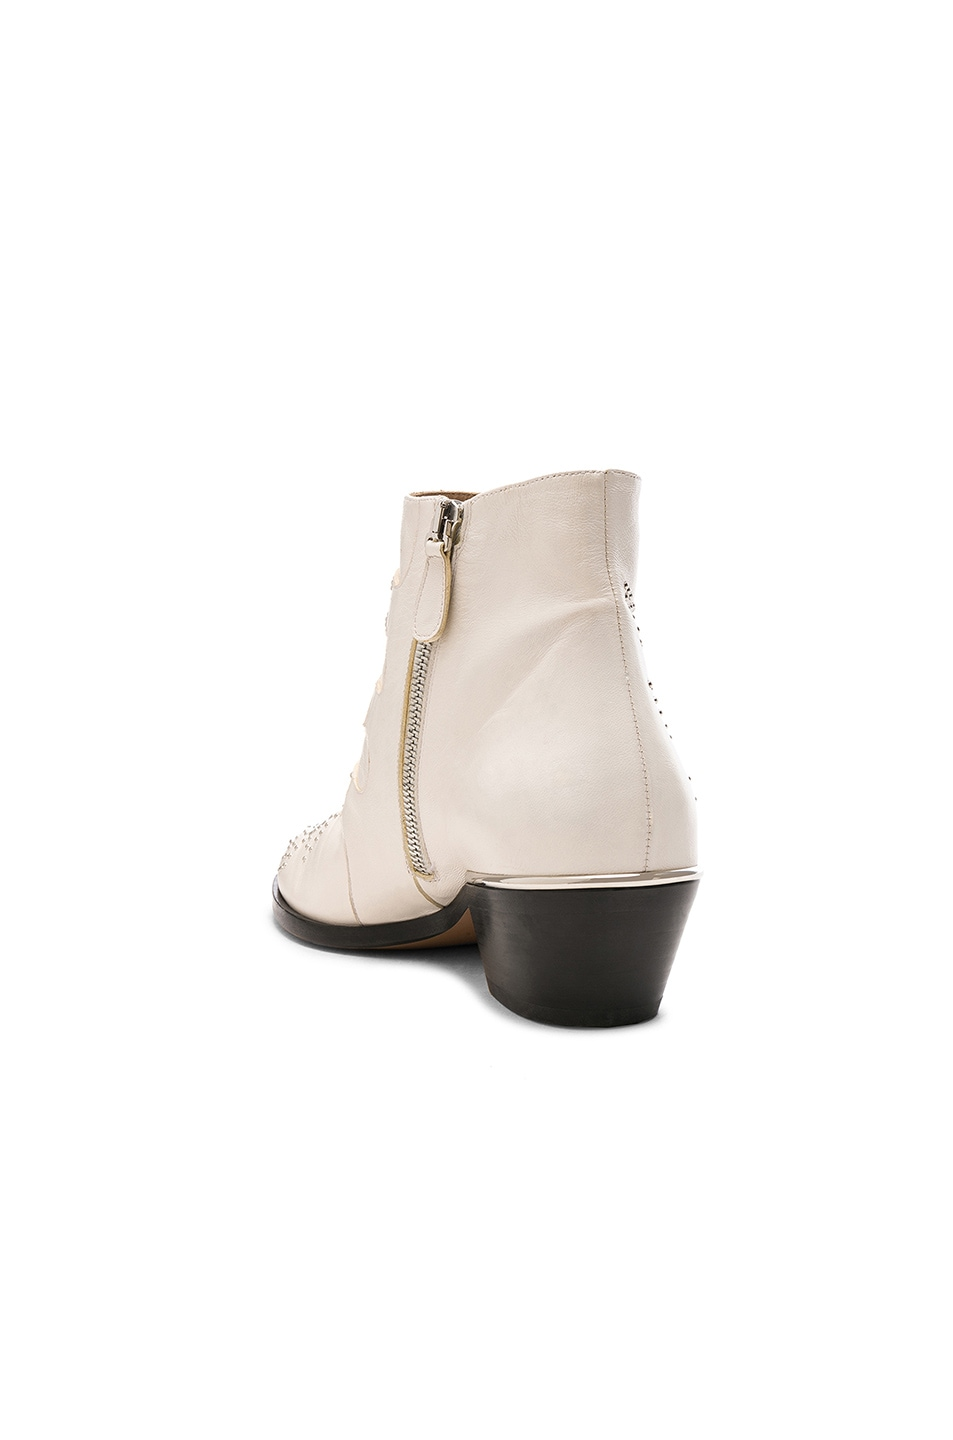 Image 3 of Chloe Susanna Leather Studded Ankle Boots in Cloudy White